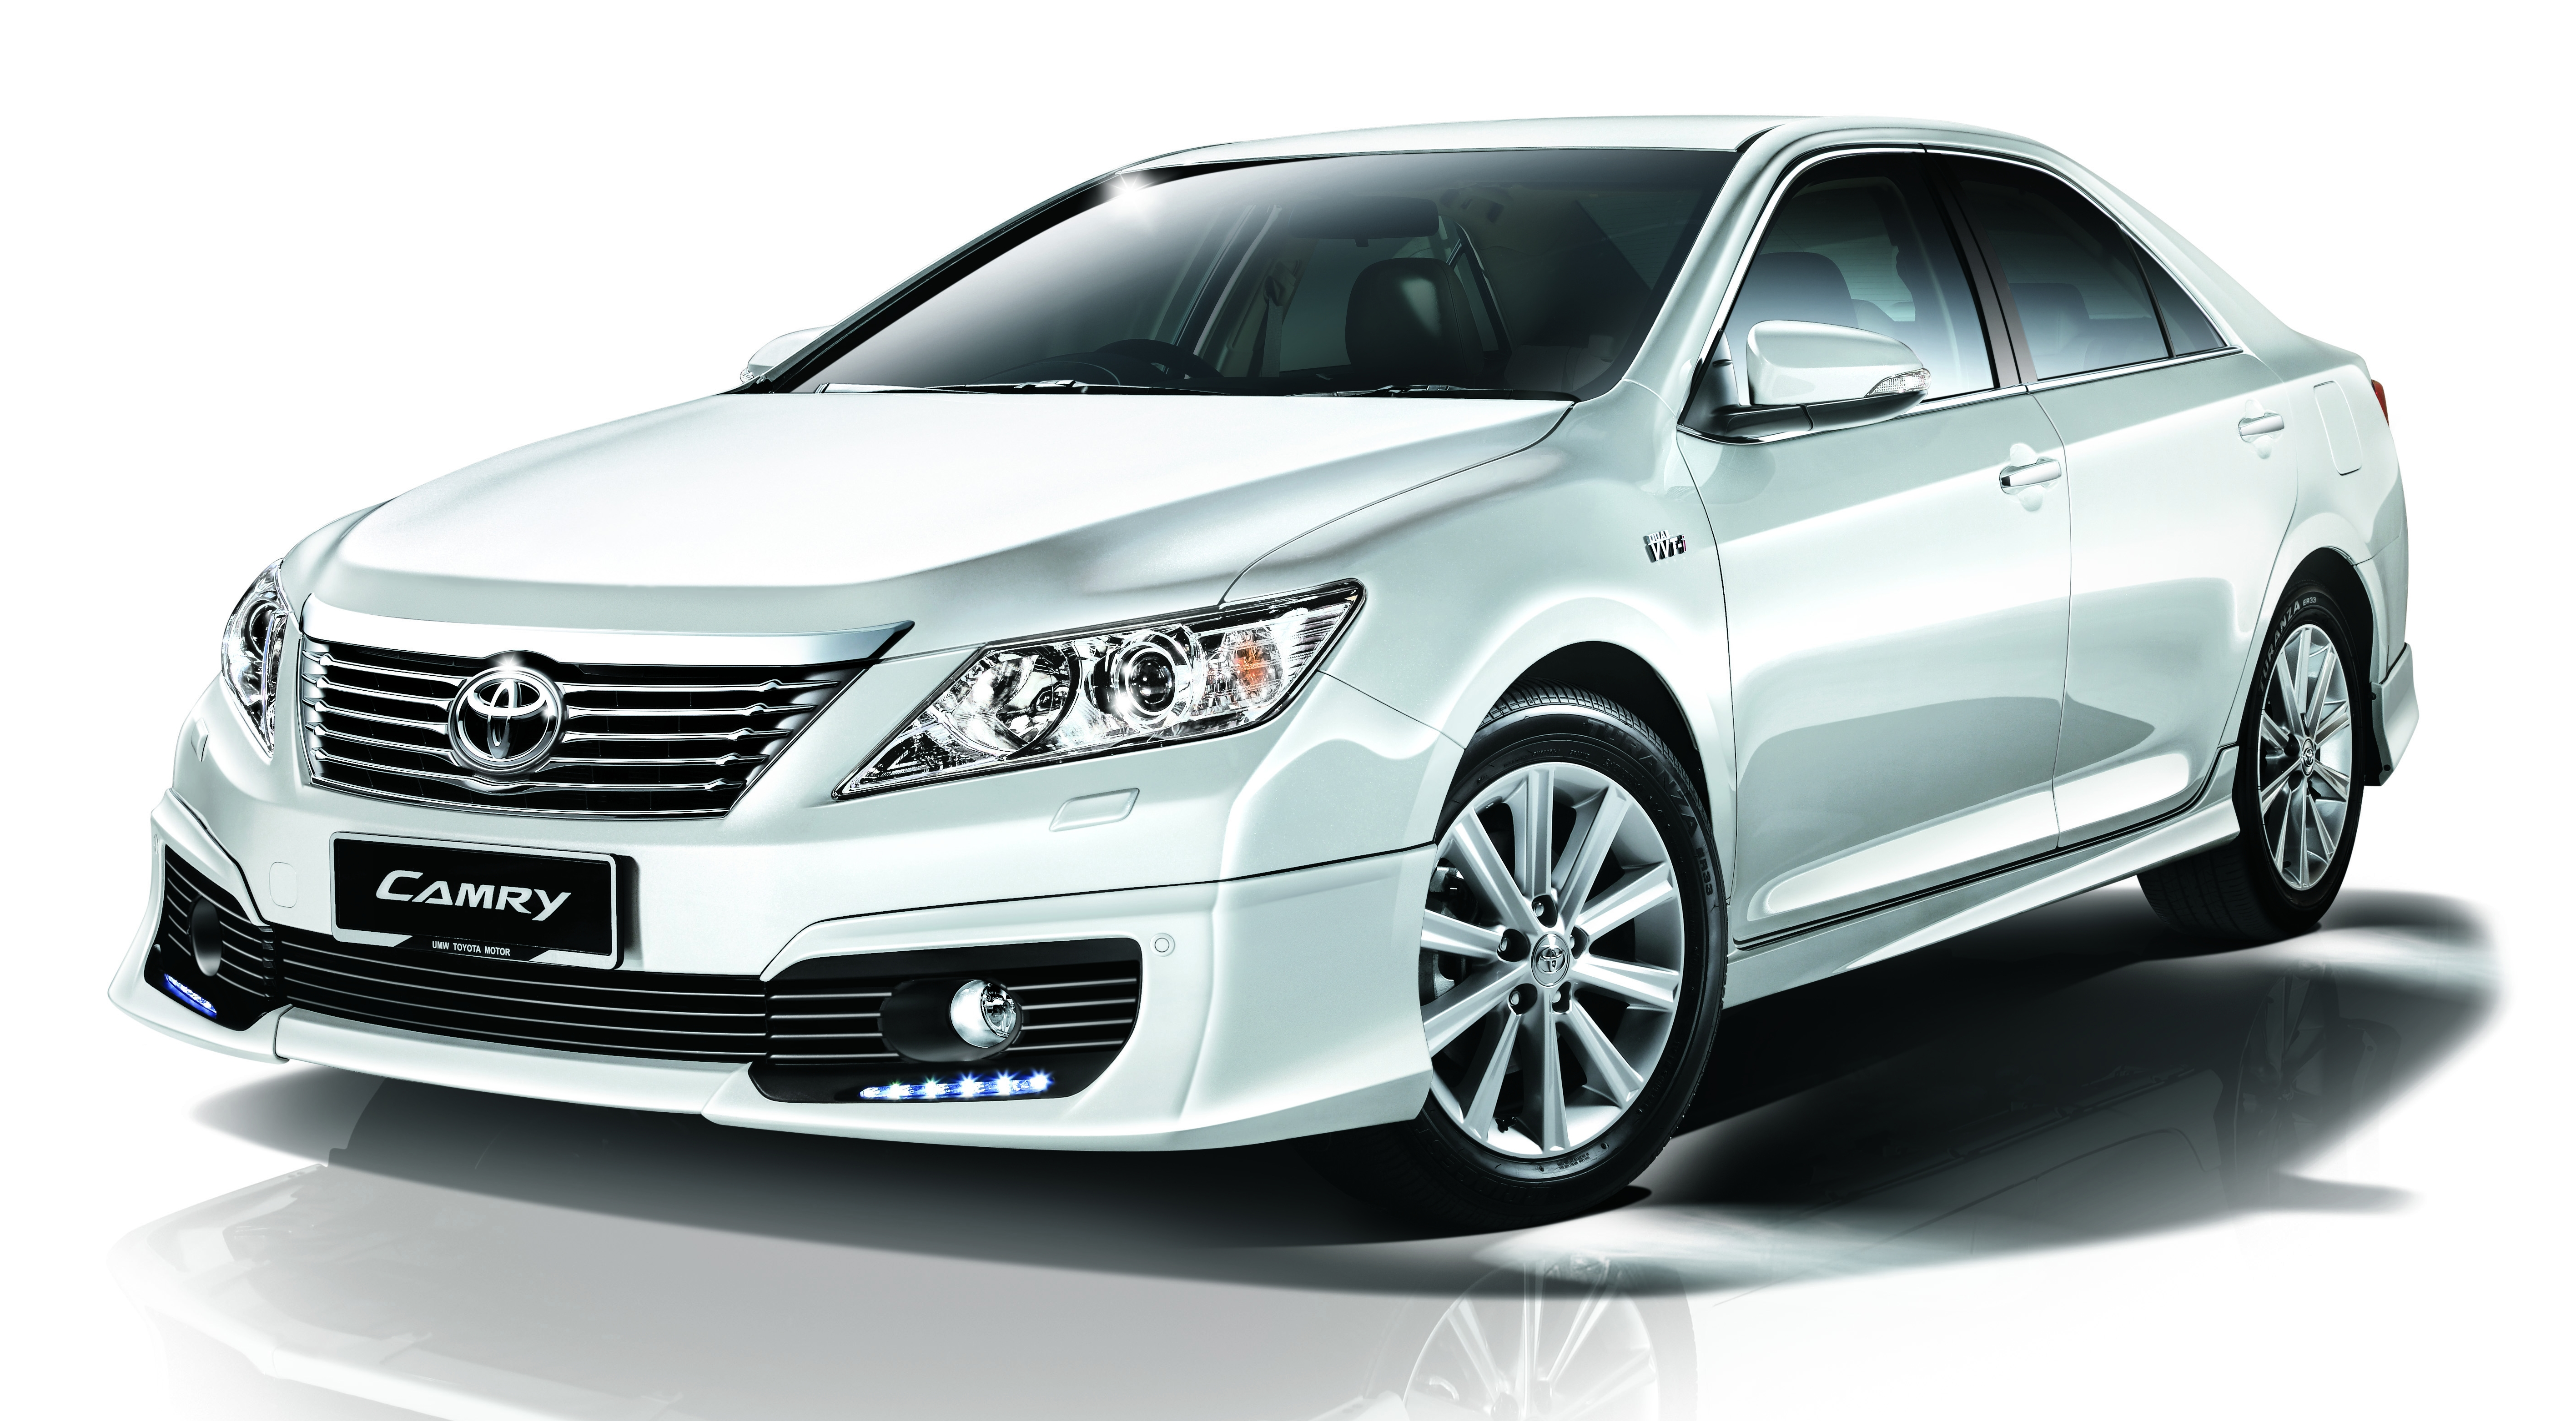 Toyota Camry Xv50 Launched Rm150k To Rm181k Image 110024